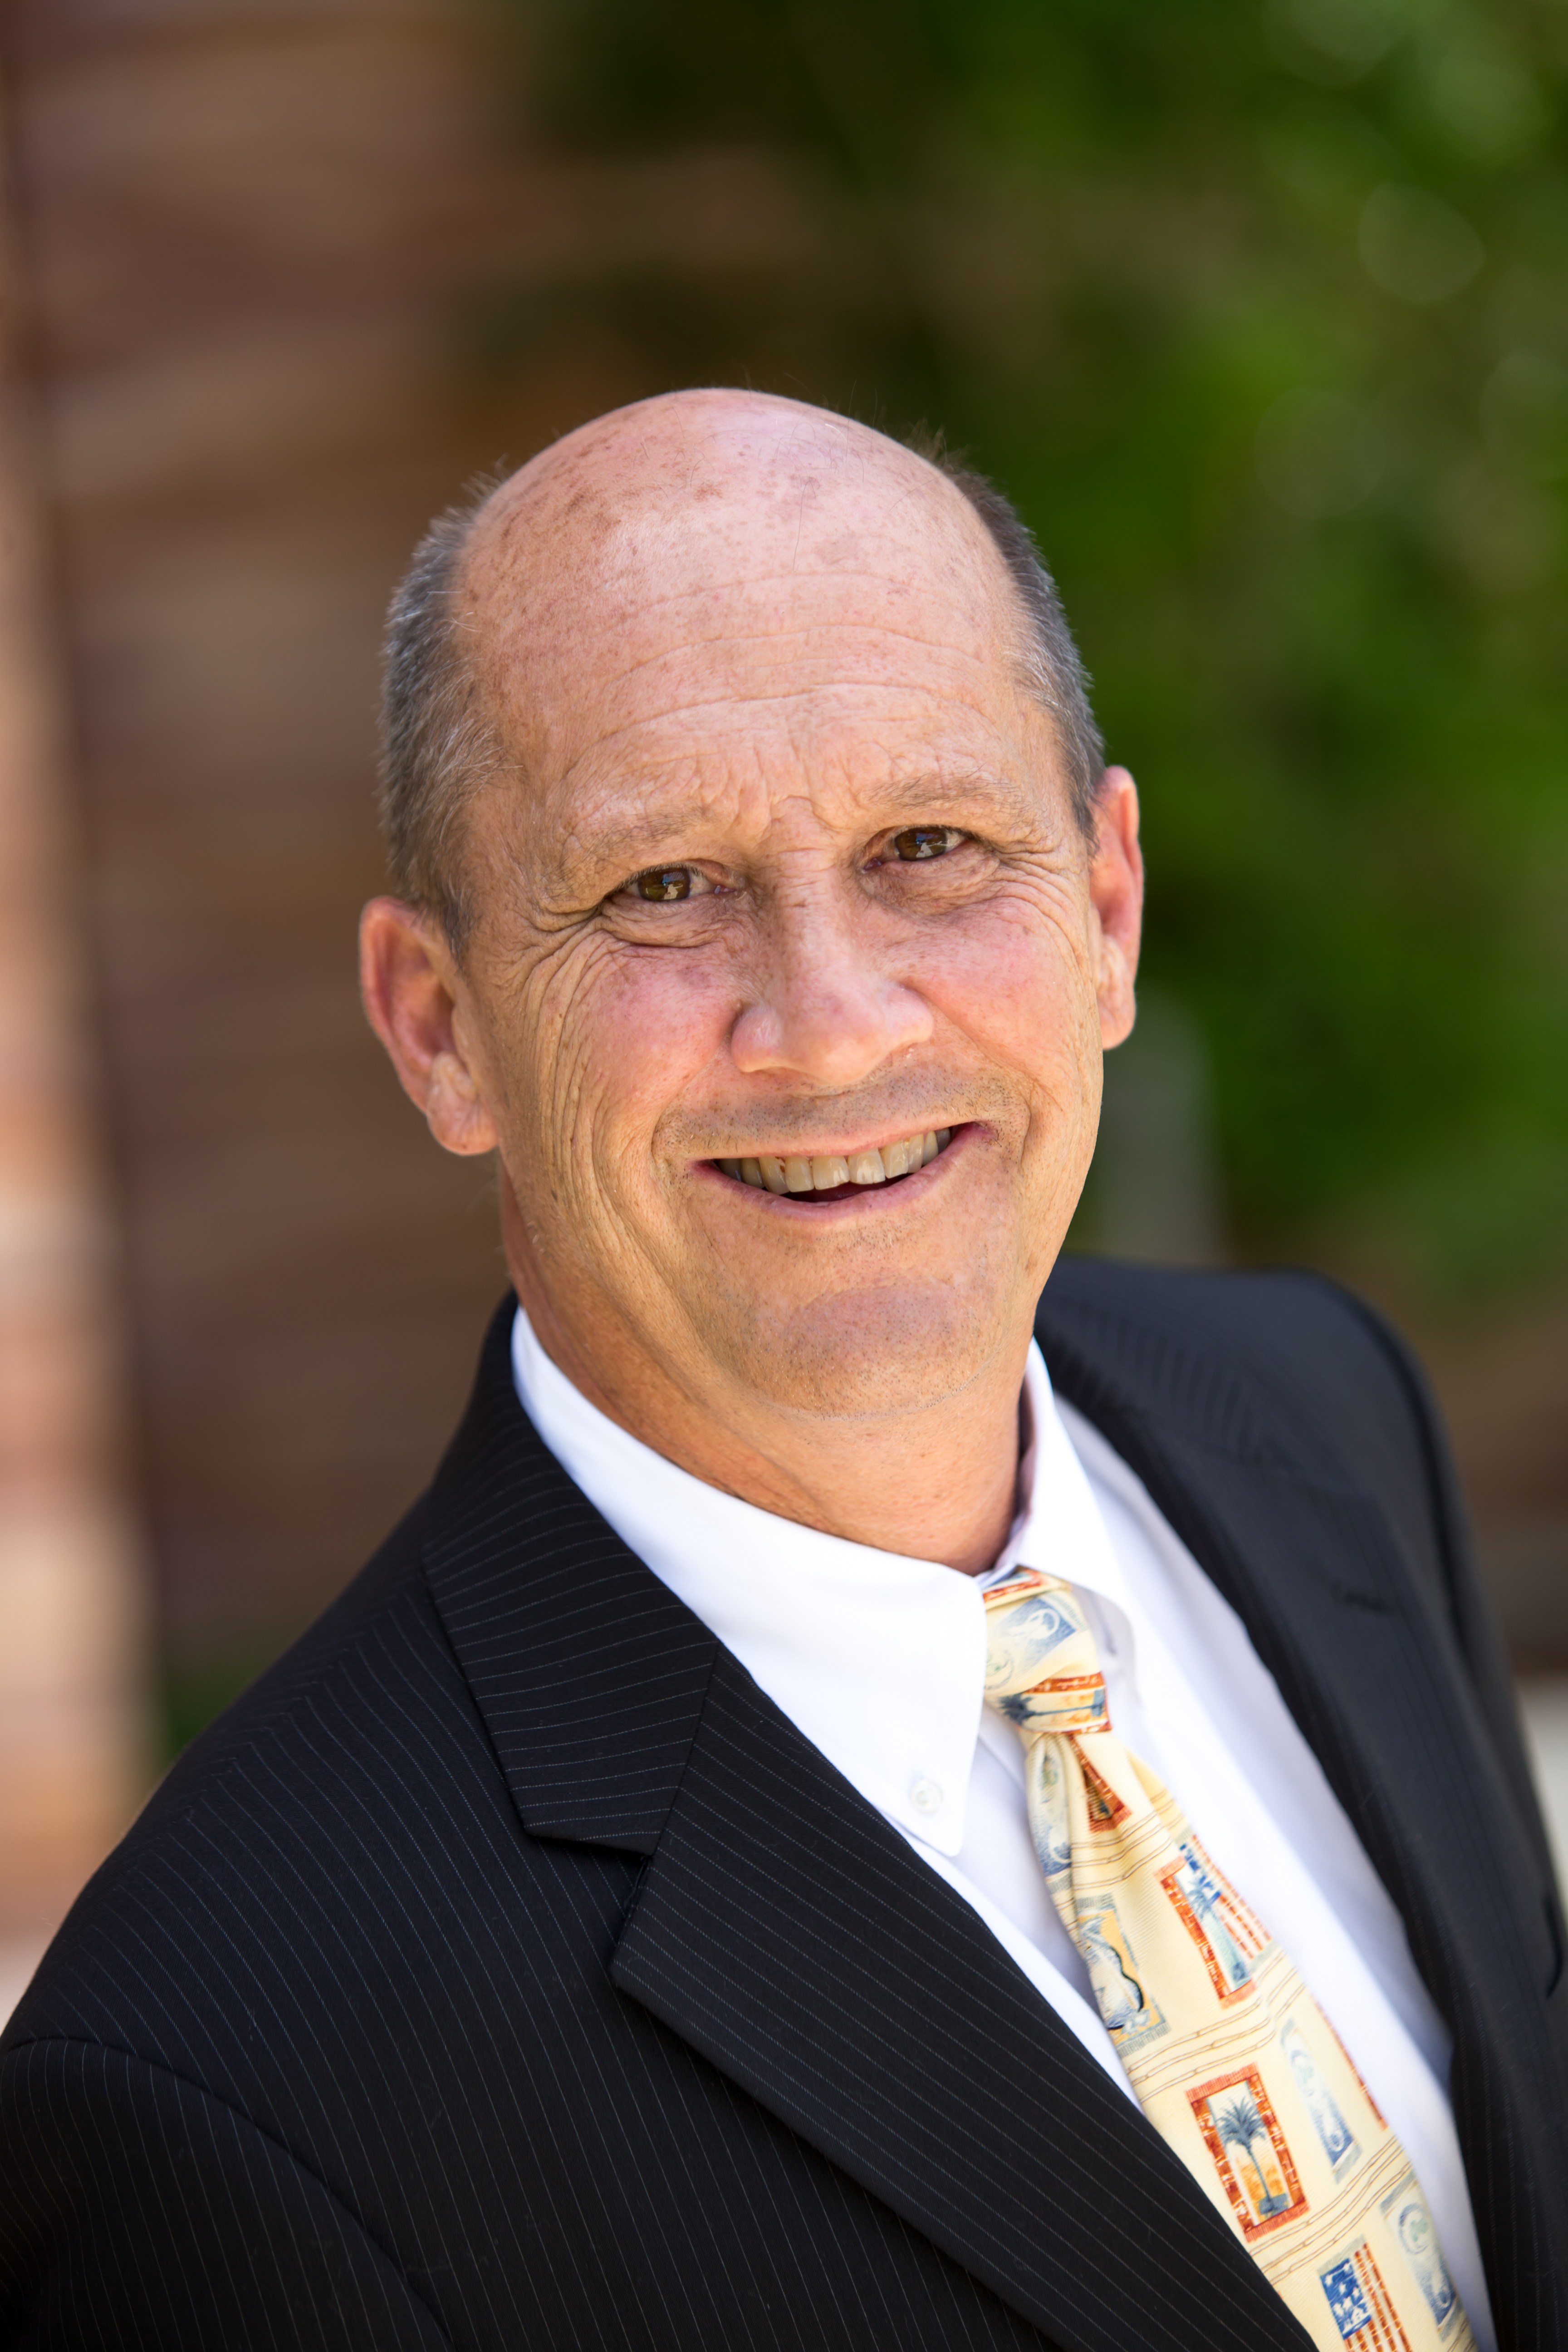 Michael O. Hilton elected to the Conrad N. Hilton Foundation board of directors (Photo: Business Wire)